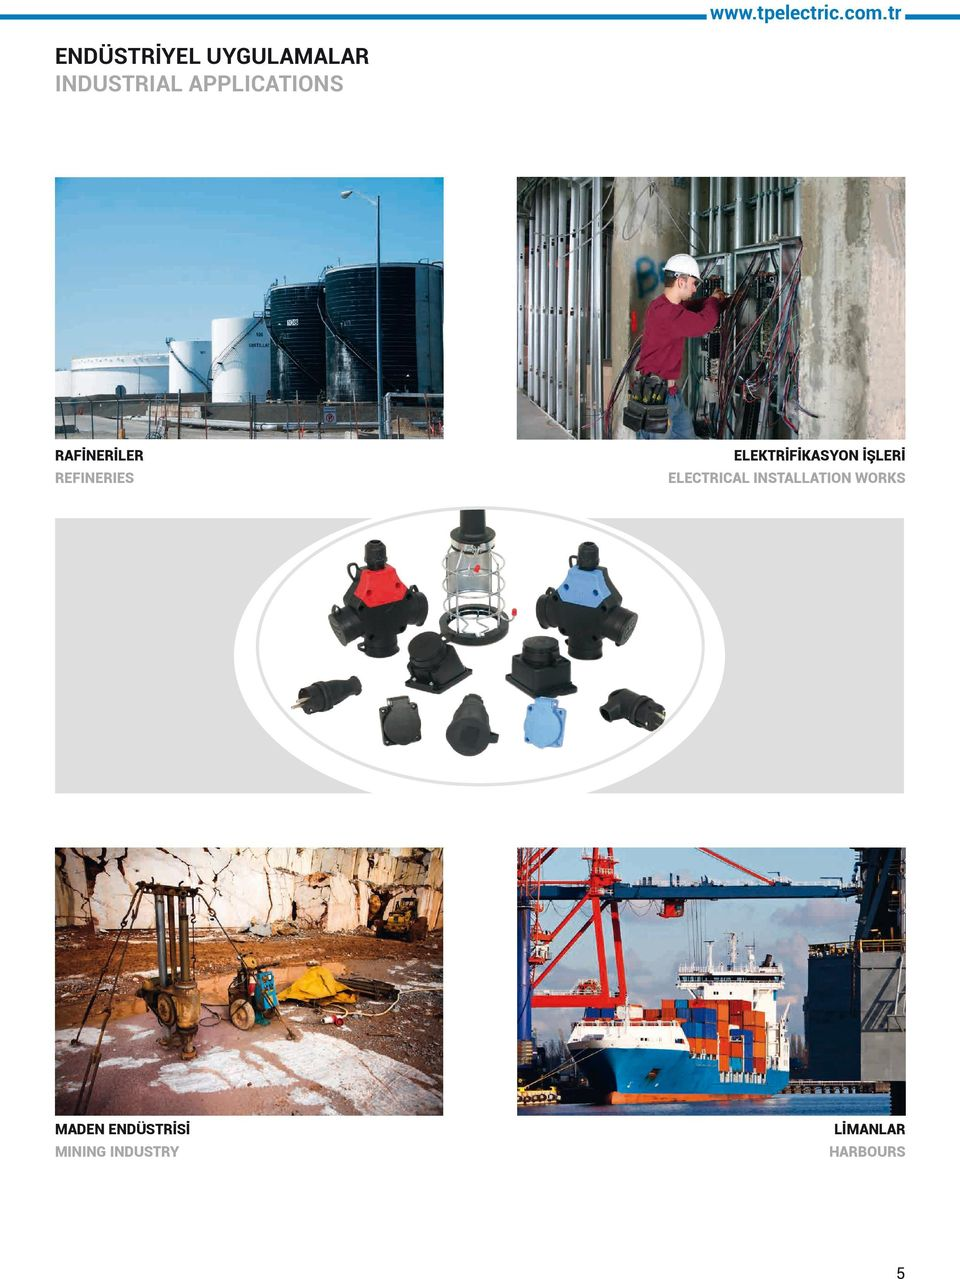 APPLICATIONS RAFİNERİLER REFINERIES